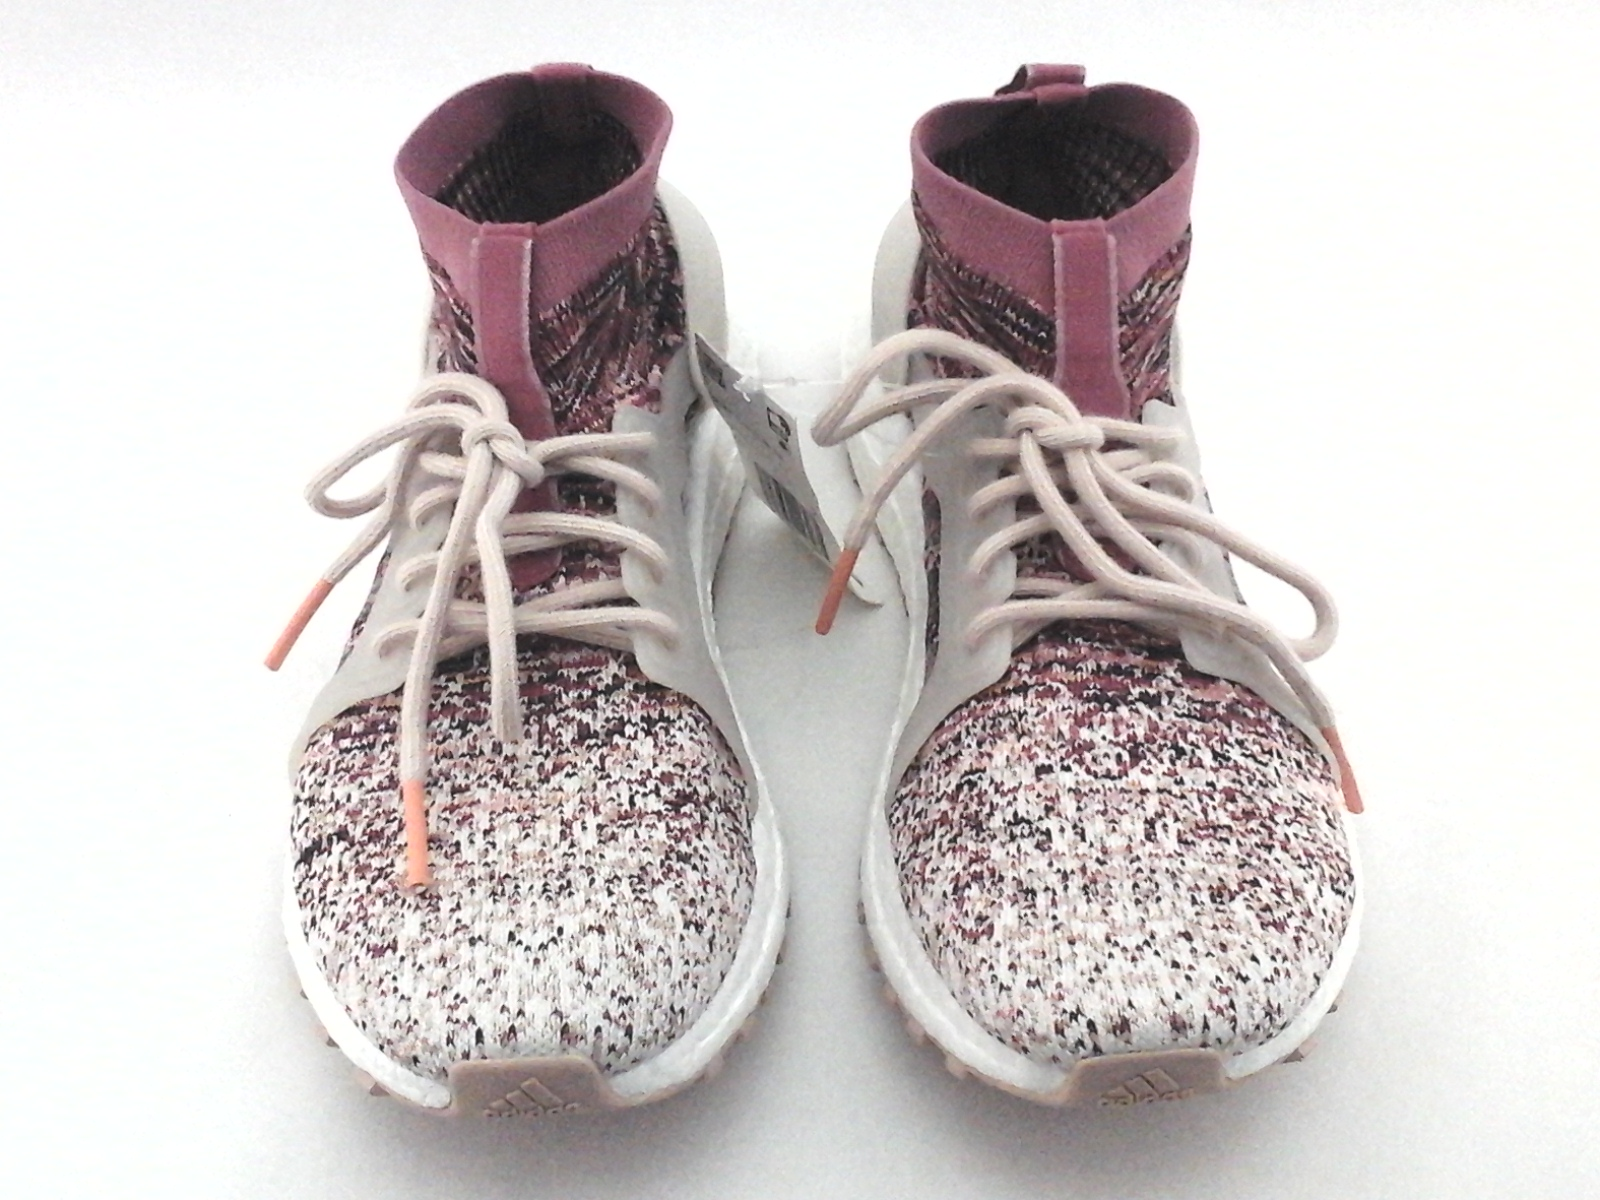 00e63736e1257 ADIDAS UltraBoost X All Terrain LTD Shoes Pink AQ0422 Womens US 7.5 39 1 3  RARE